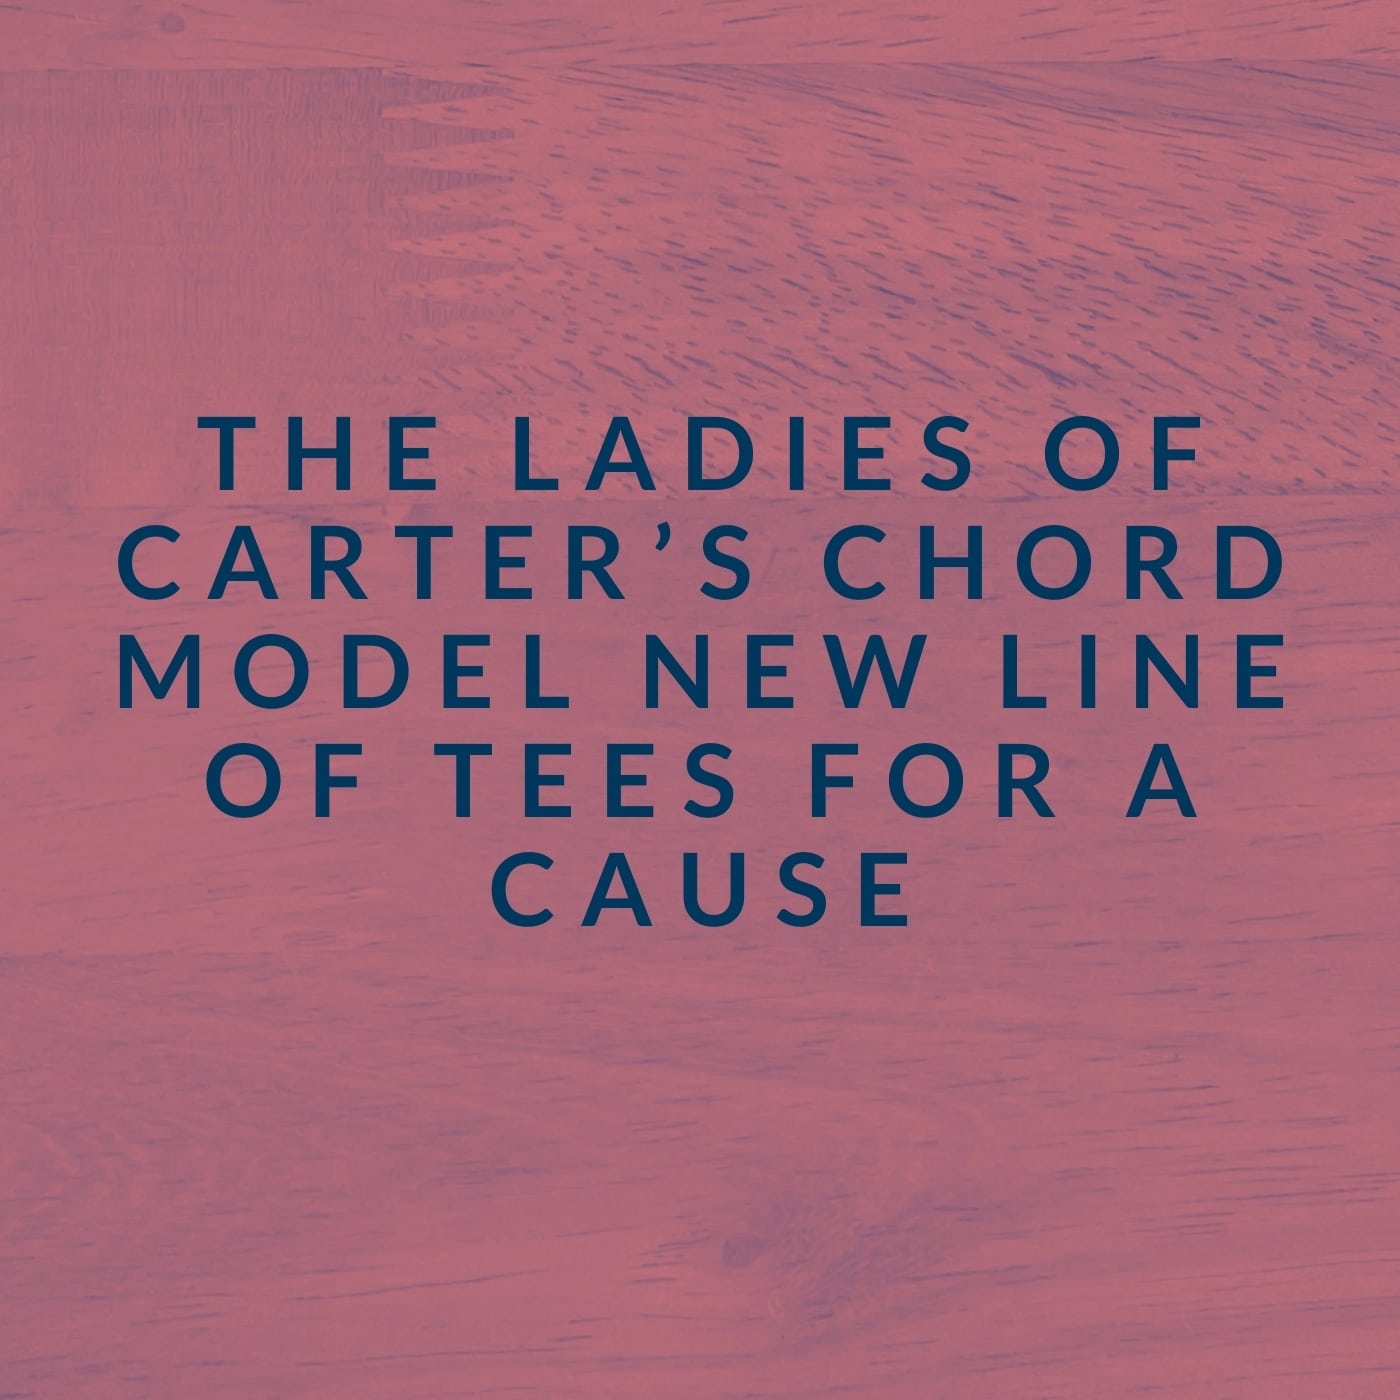 The Ladies of Carter's Chord Model New Line of Tees for a Cause